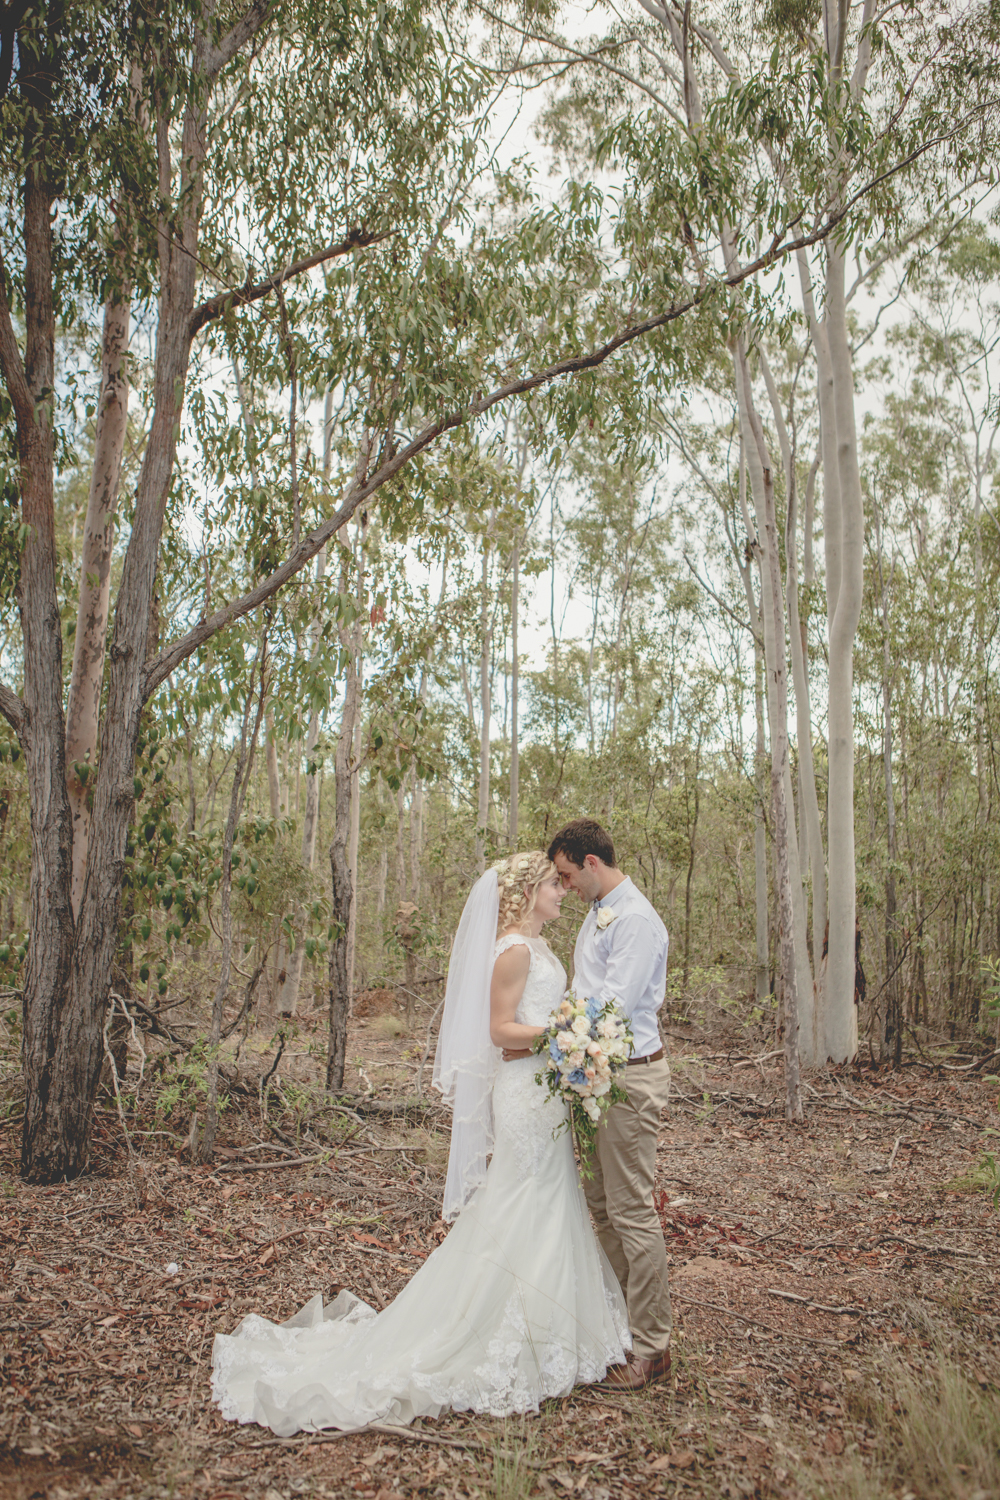 Brisbane_Wedding_Photographer-166.jpg